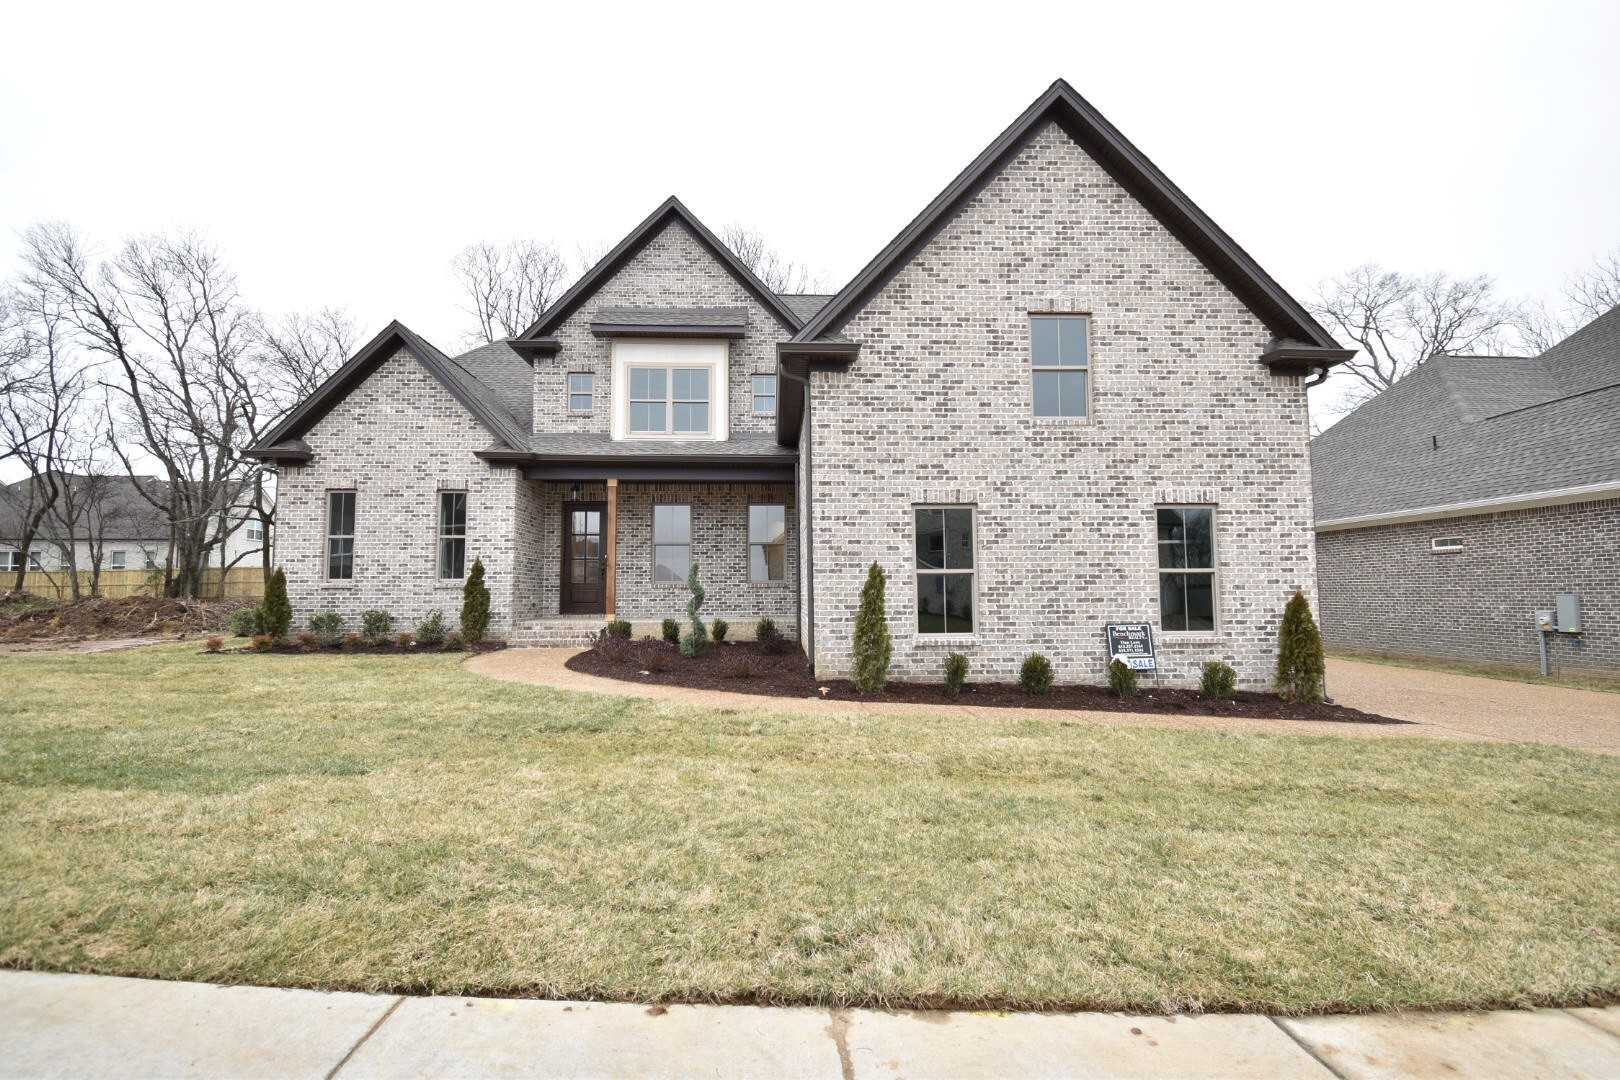 1569 Bunbury Dr (257), Thompsons Station, TN 37179 - Thompsons Station, TN real estate listing